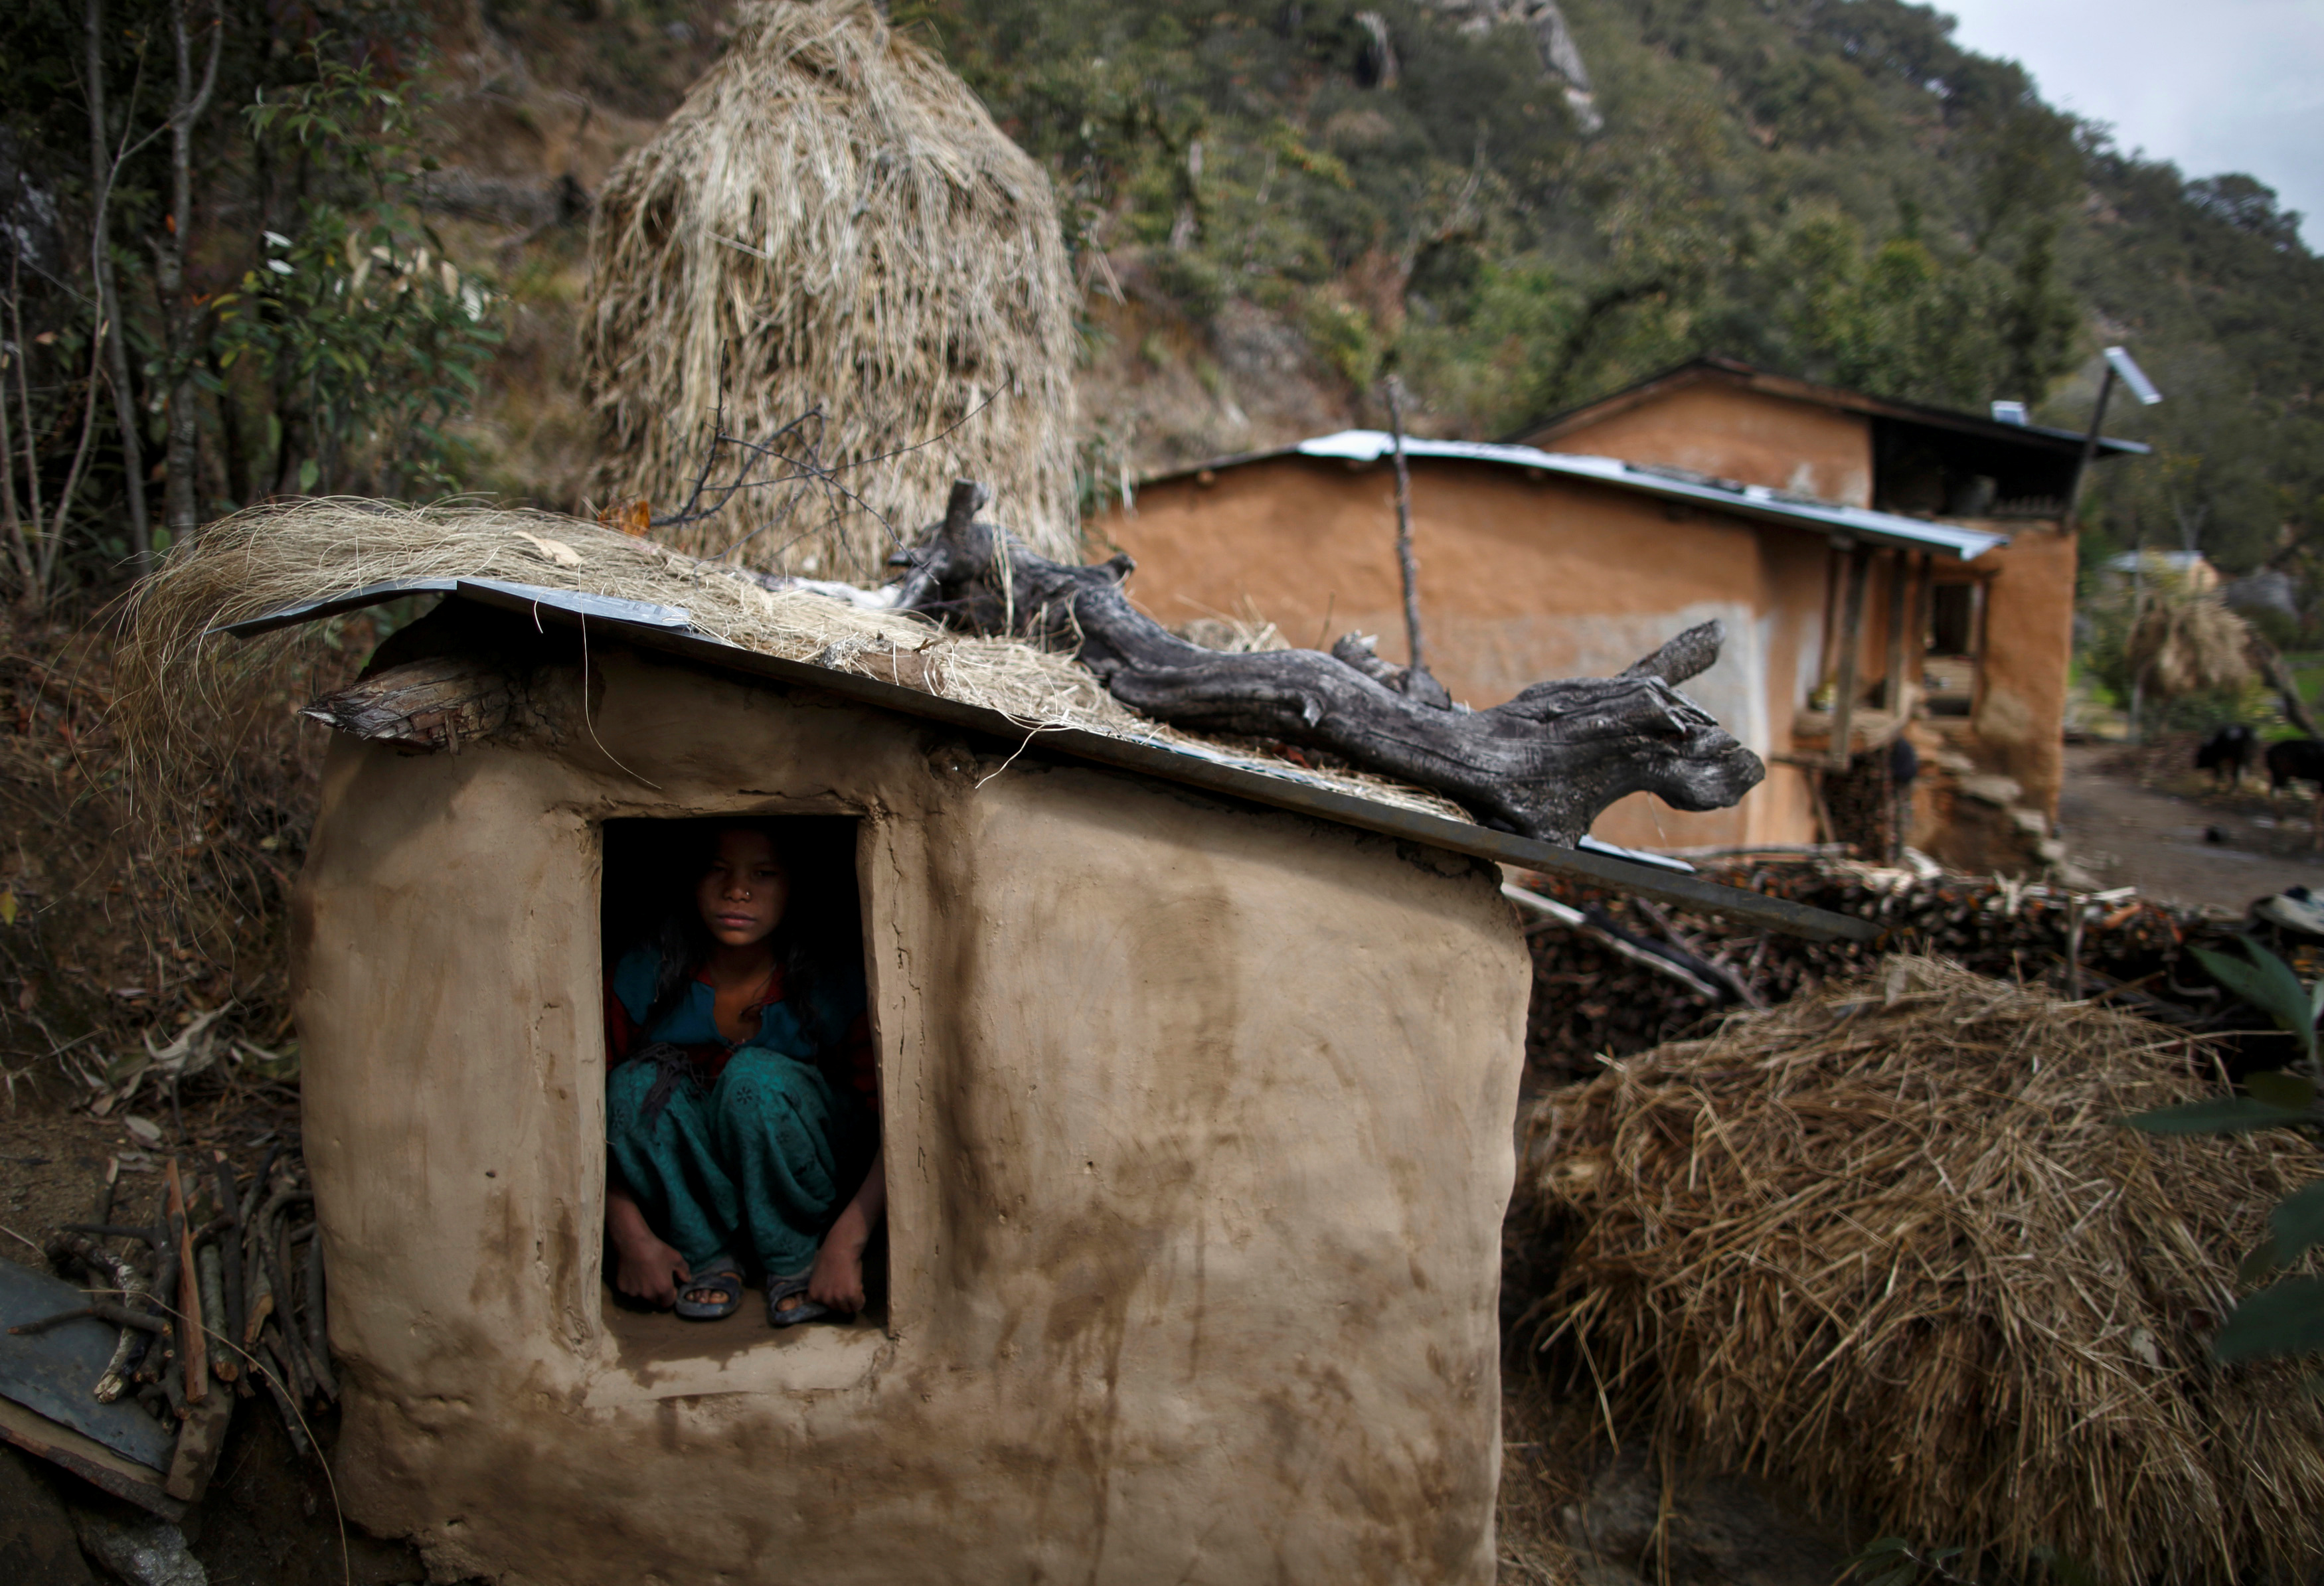 Nepal Makes First Arrest over 'Menstrual Hut' Death | Voice of America - English